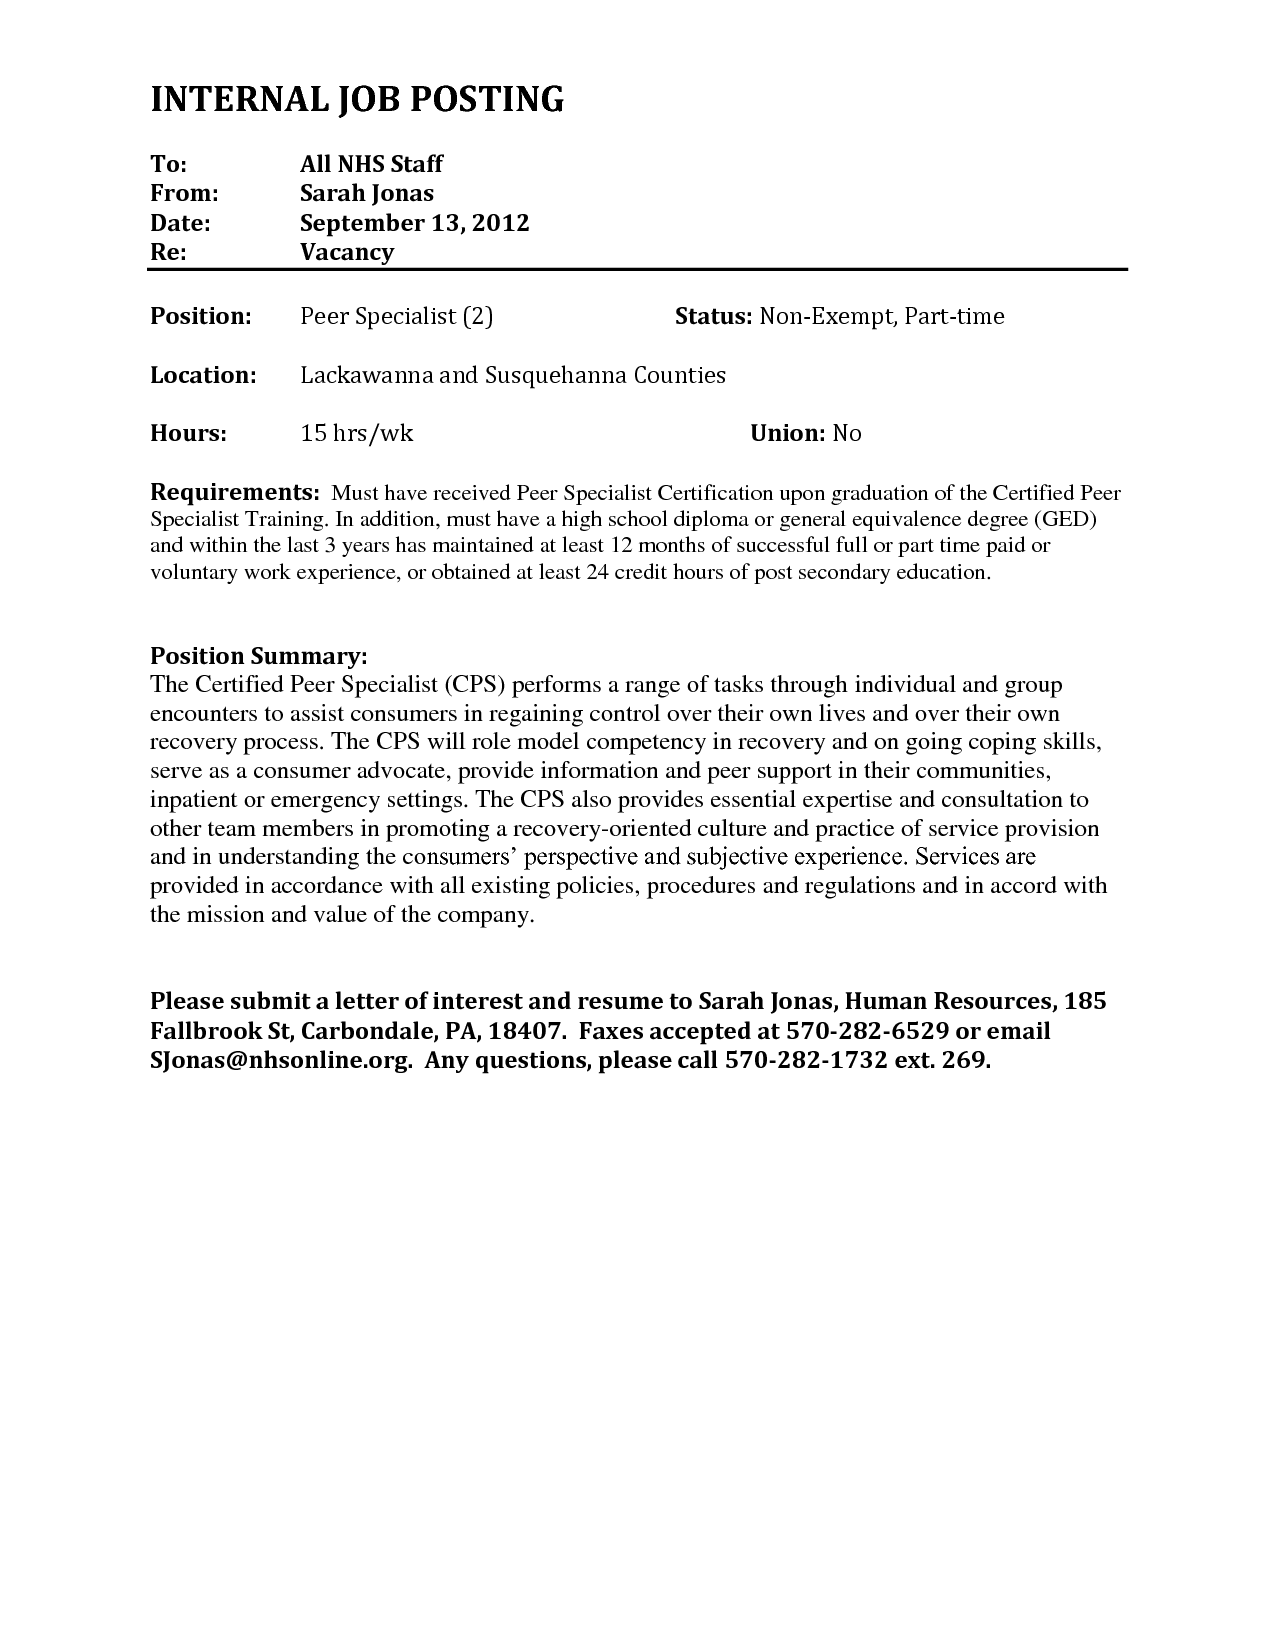 New What is A Letter Of Interest for A Job Job posting